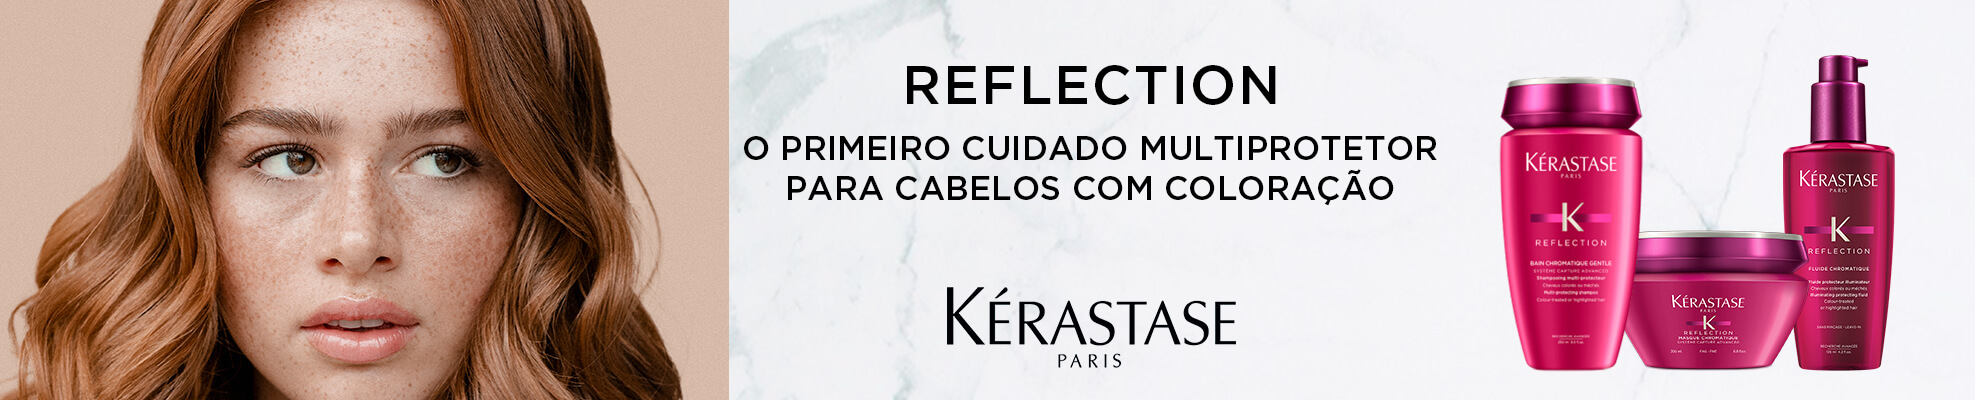 Kérastase Reflection